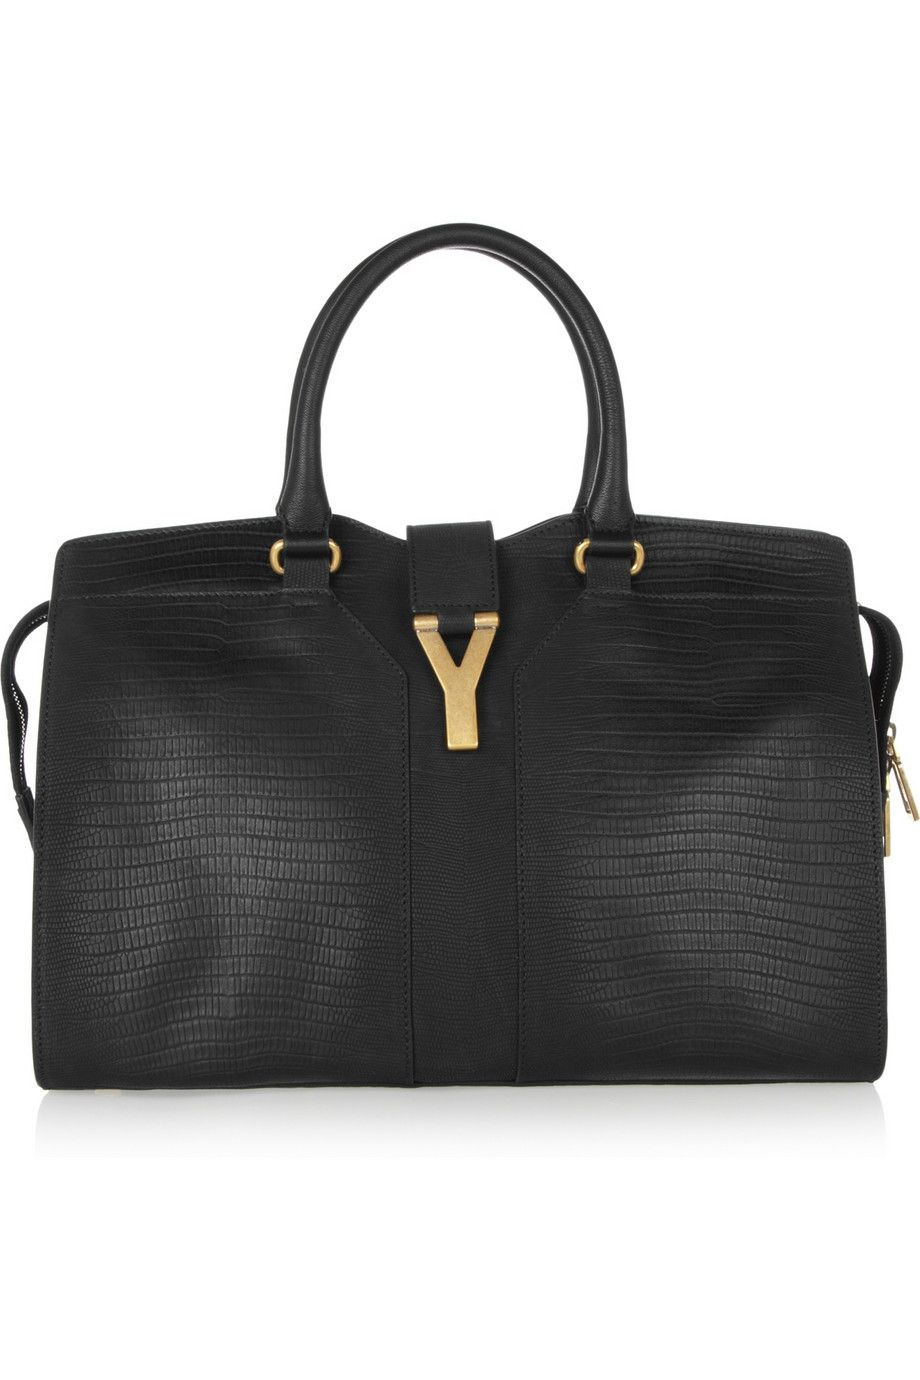 6ccb02afe3b9 Yves Saint Laurent